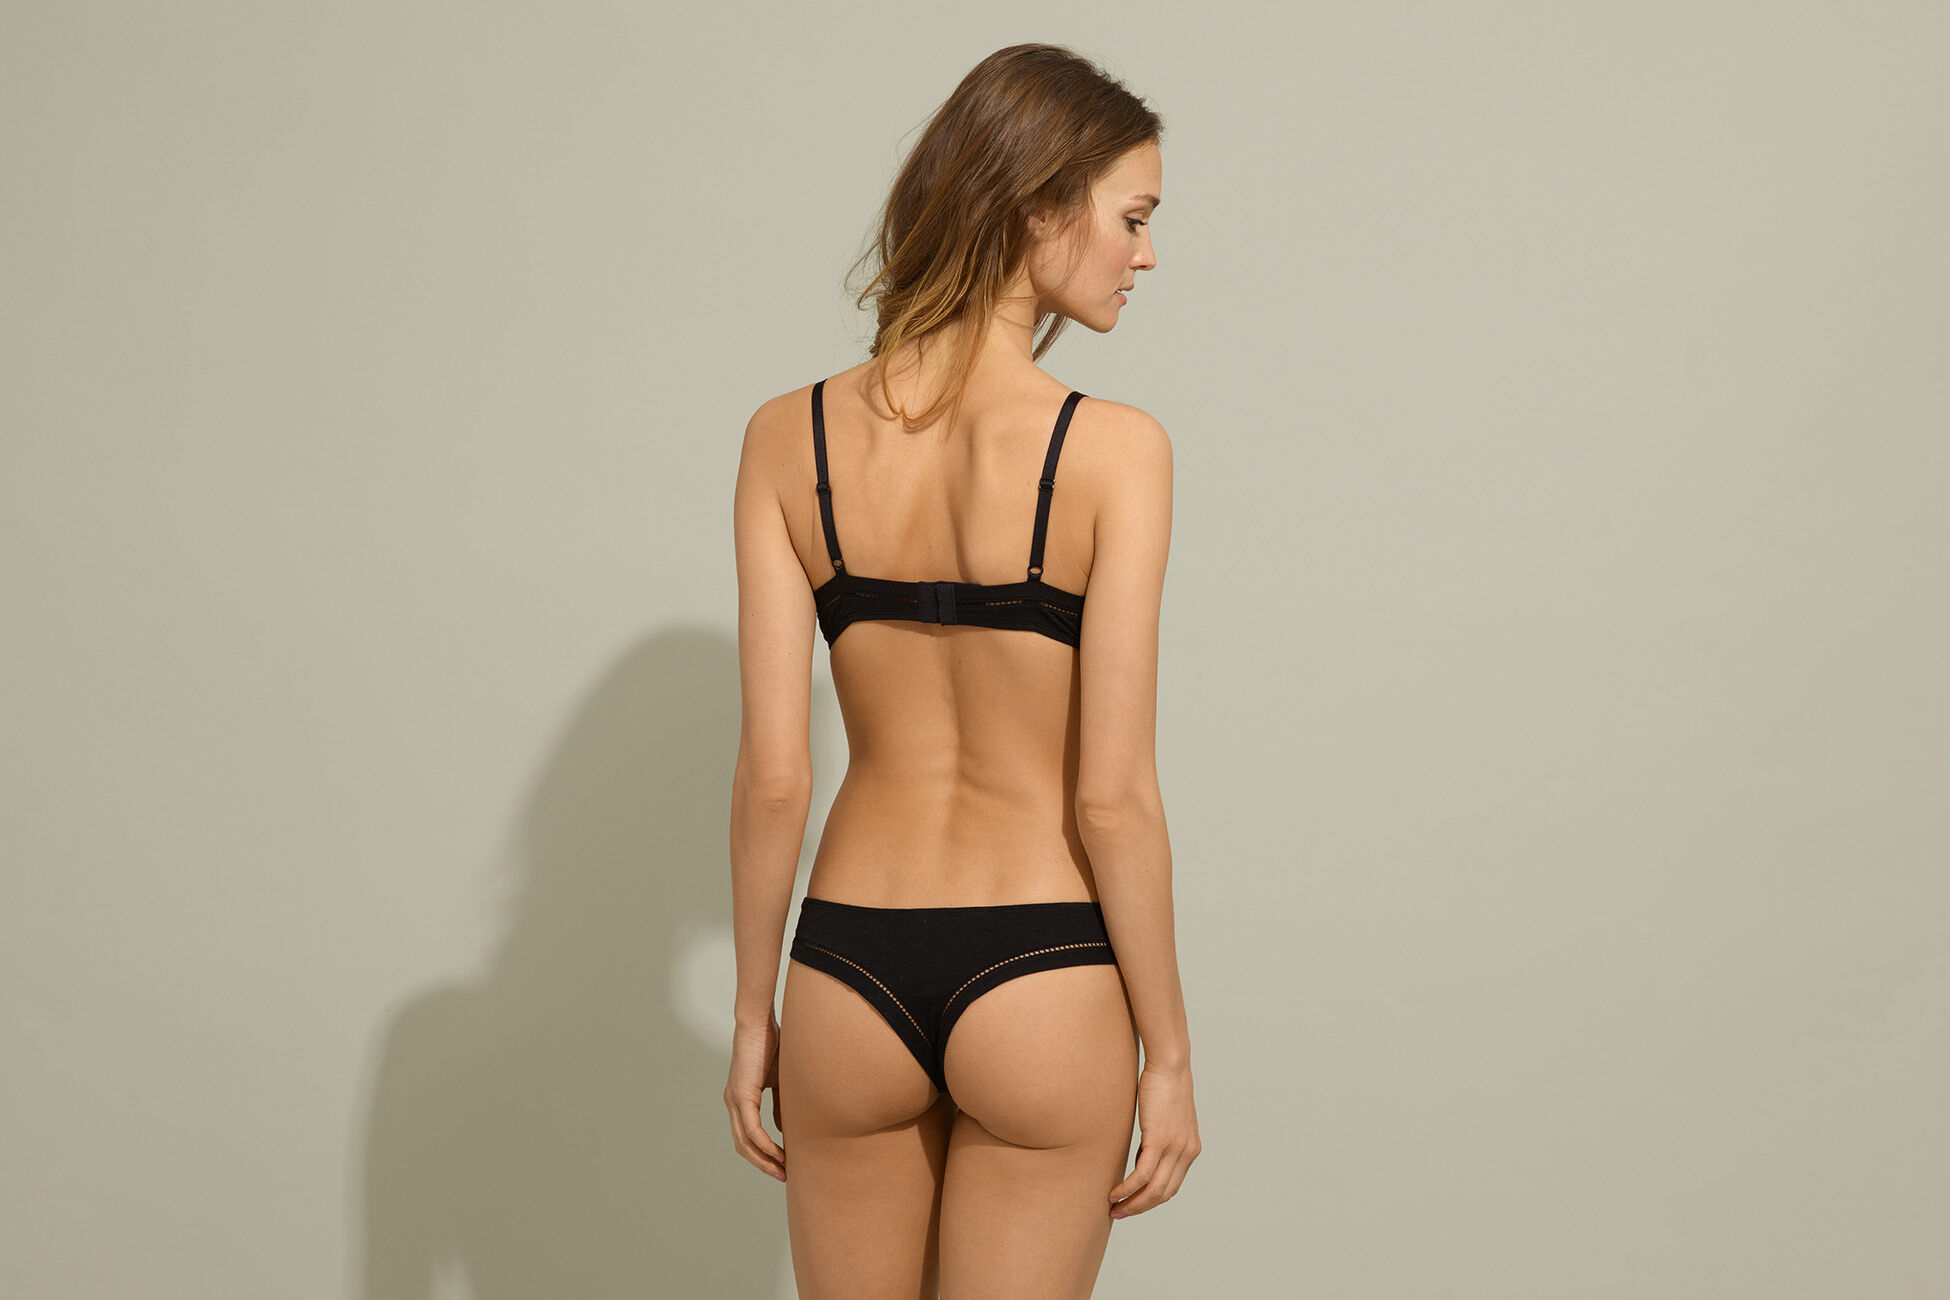 Souvent Full-cup bra standard view �